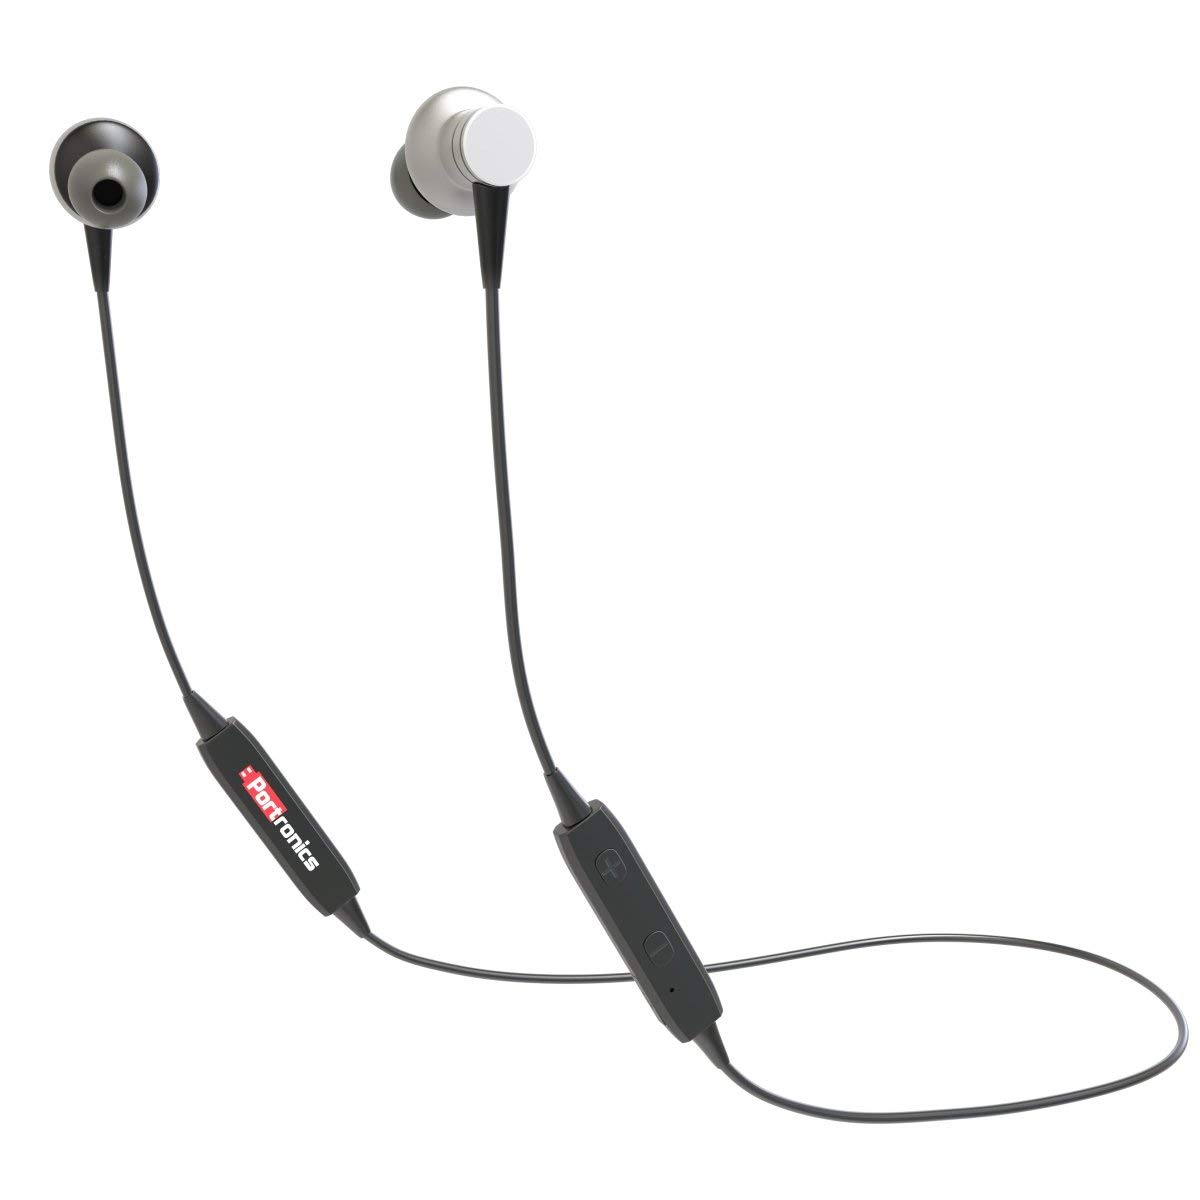 Portronics POR-794 Harmonics 204 Inline in-Ear Bluetooth Stereo Earphones with Magnetic Latch